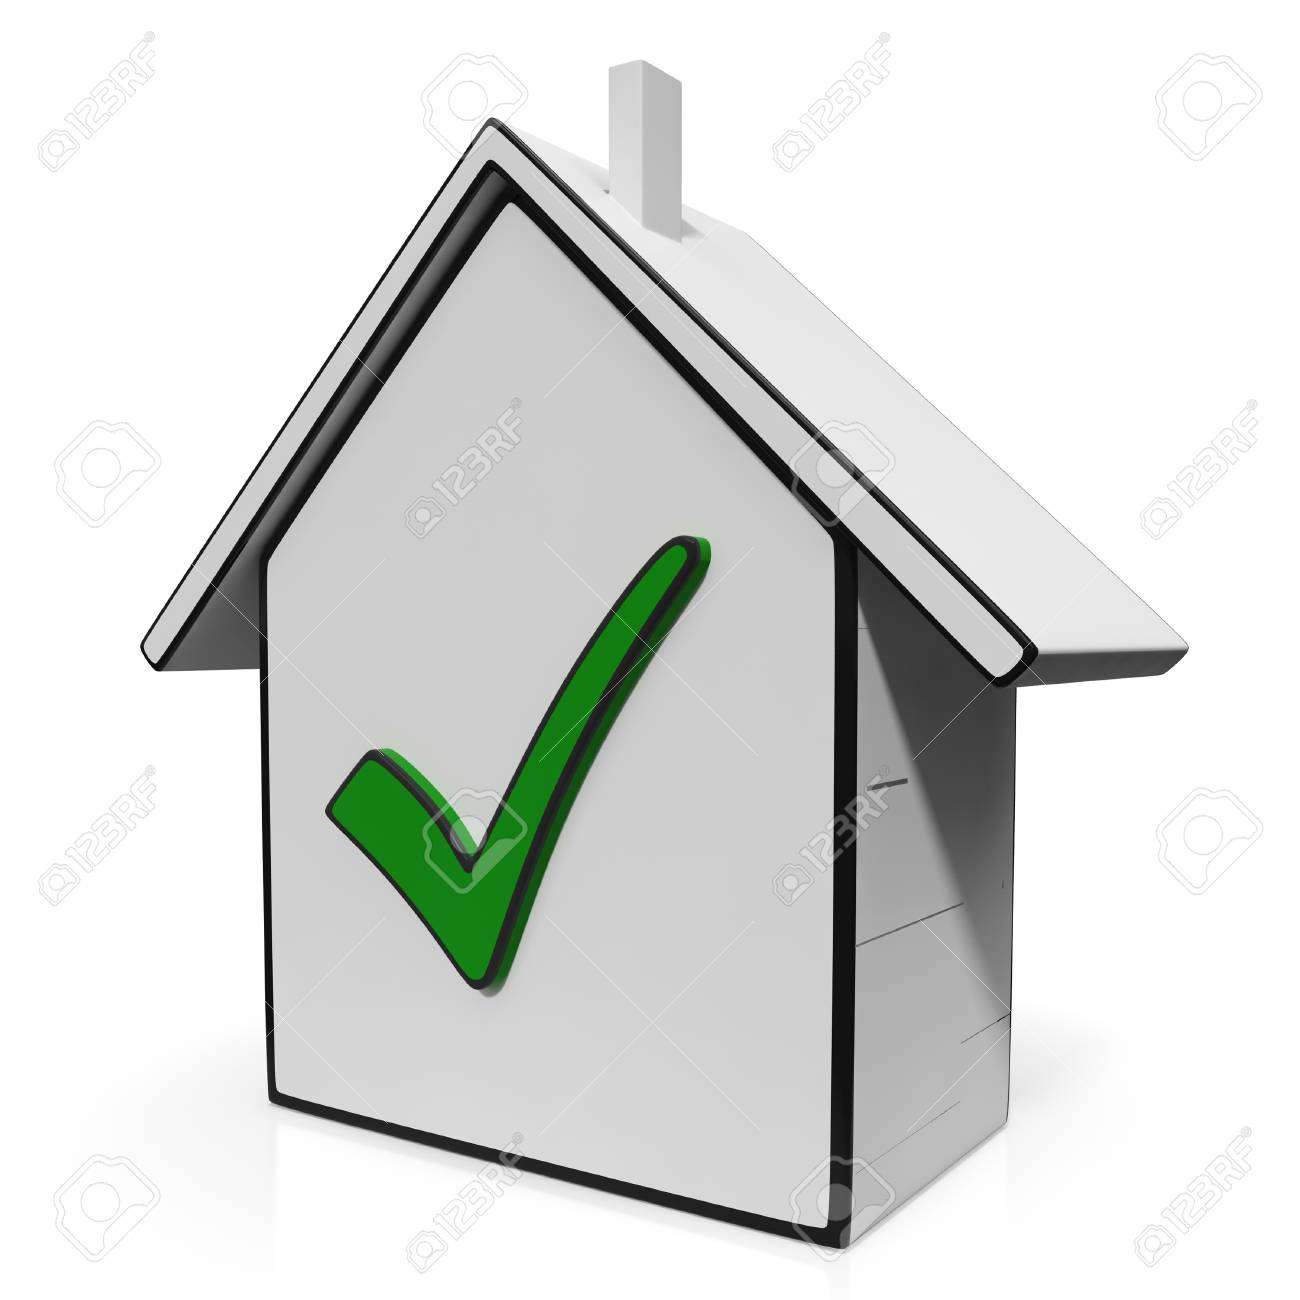 Home Icons With Check Shows House Or Building For Sale Stock Photo - 22640882